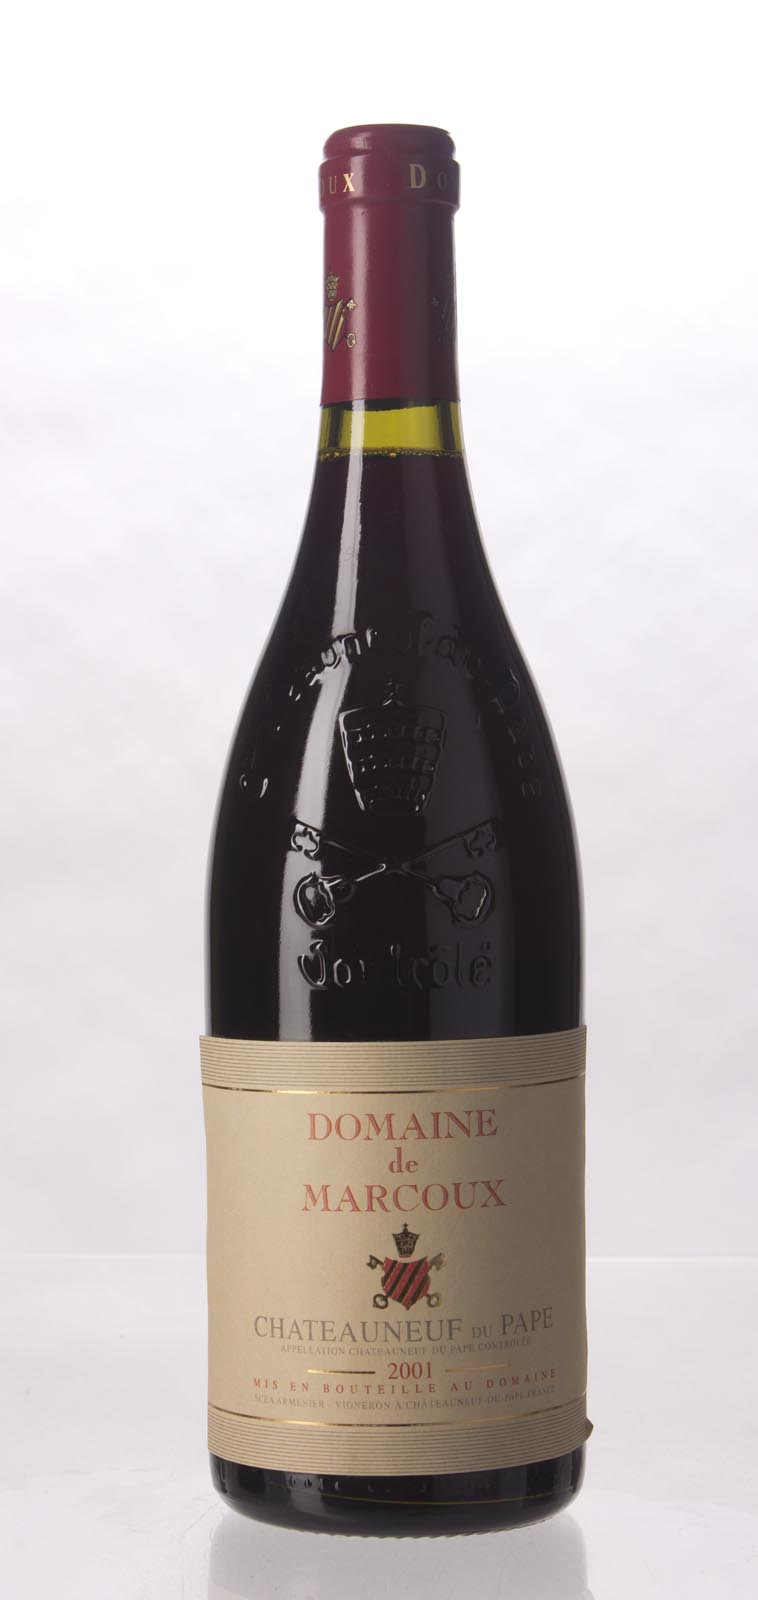 Domaine de Marcoux Chateauneuf du Pape 2001, 750mL (ST92) from The BPW - Merchants of rare and fine wines.